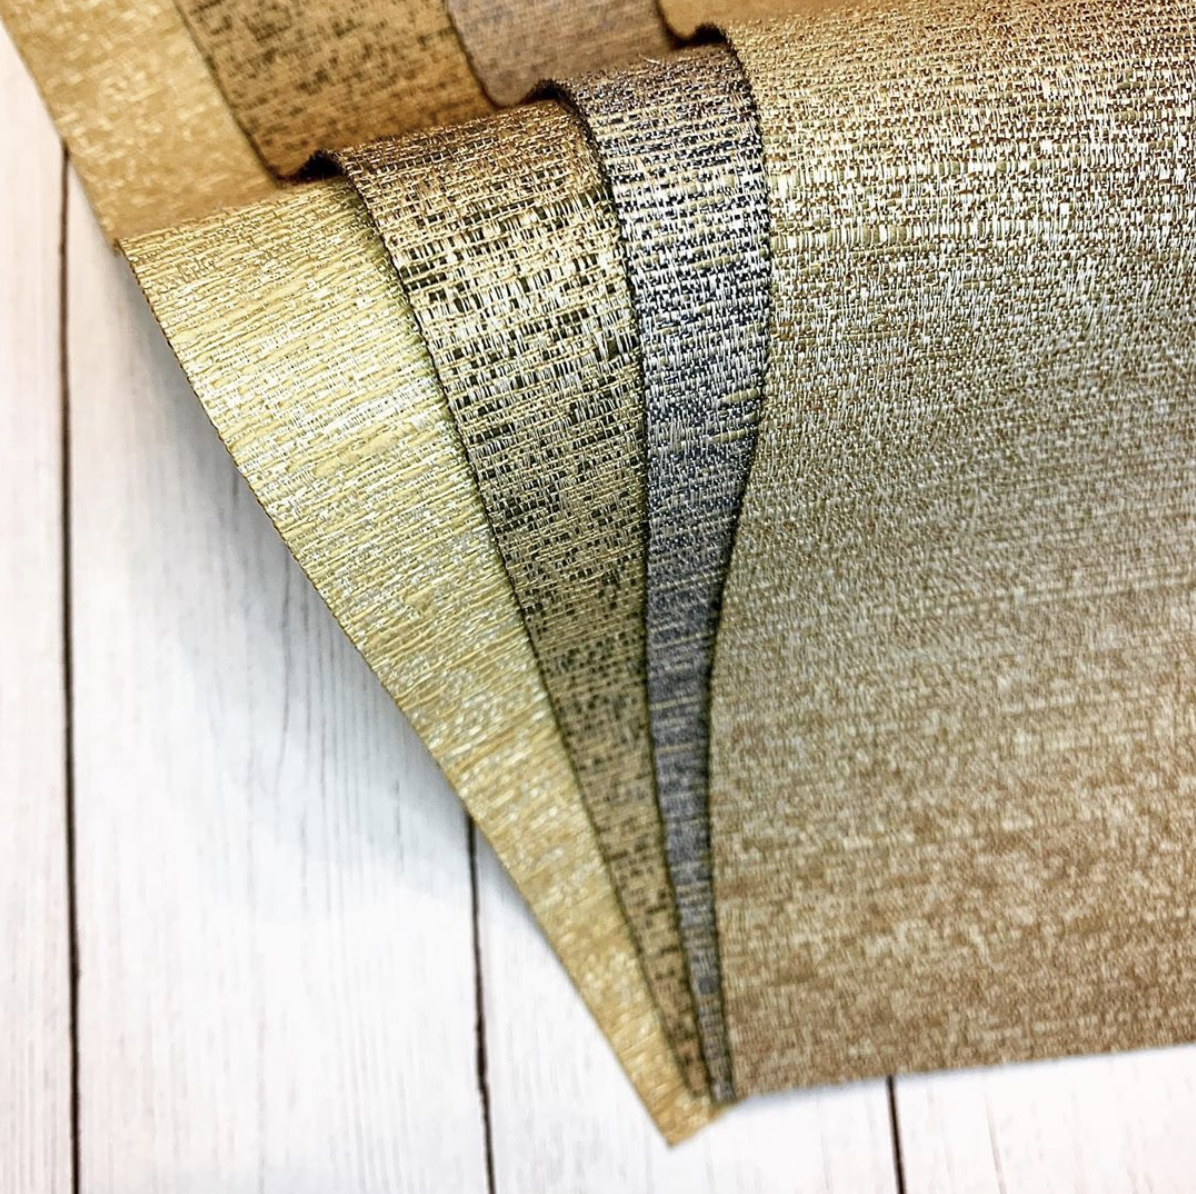 Metallic gold fabric swatches for window treatments.